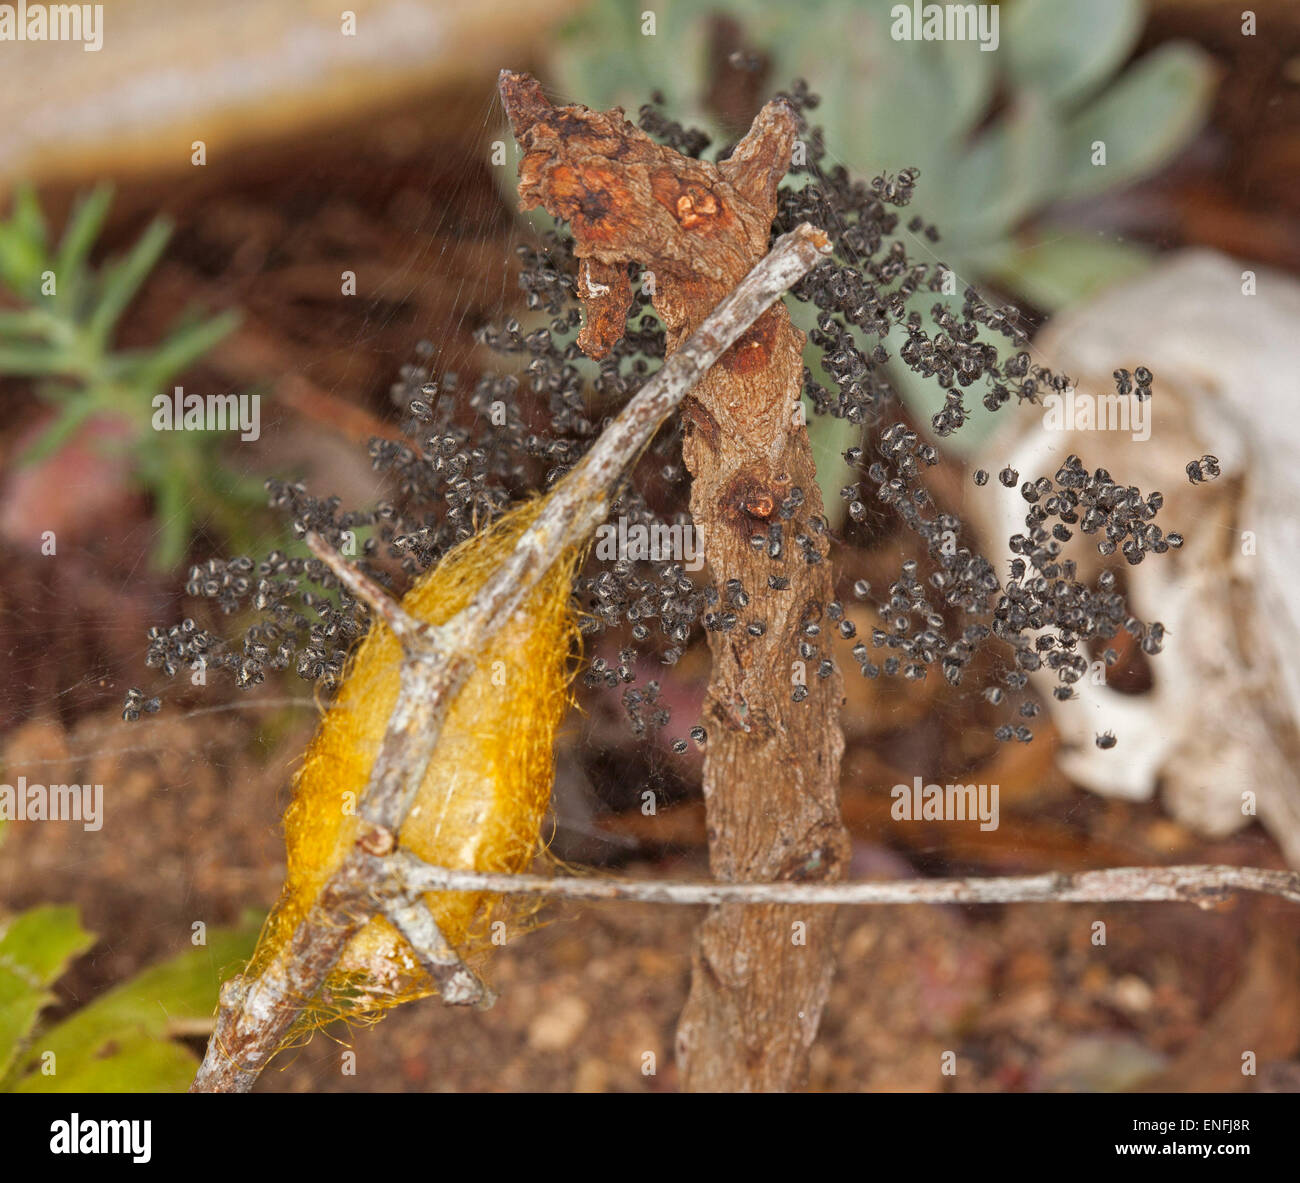 Hordes of tiny black spiderlings beside spider's egg sac woven with golden yellow silk and from which they had - Stock Image